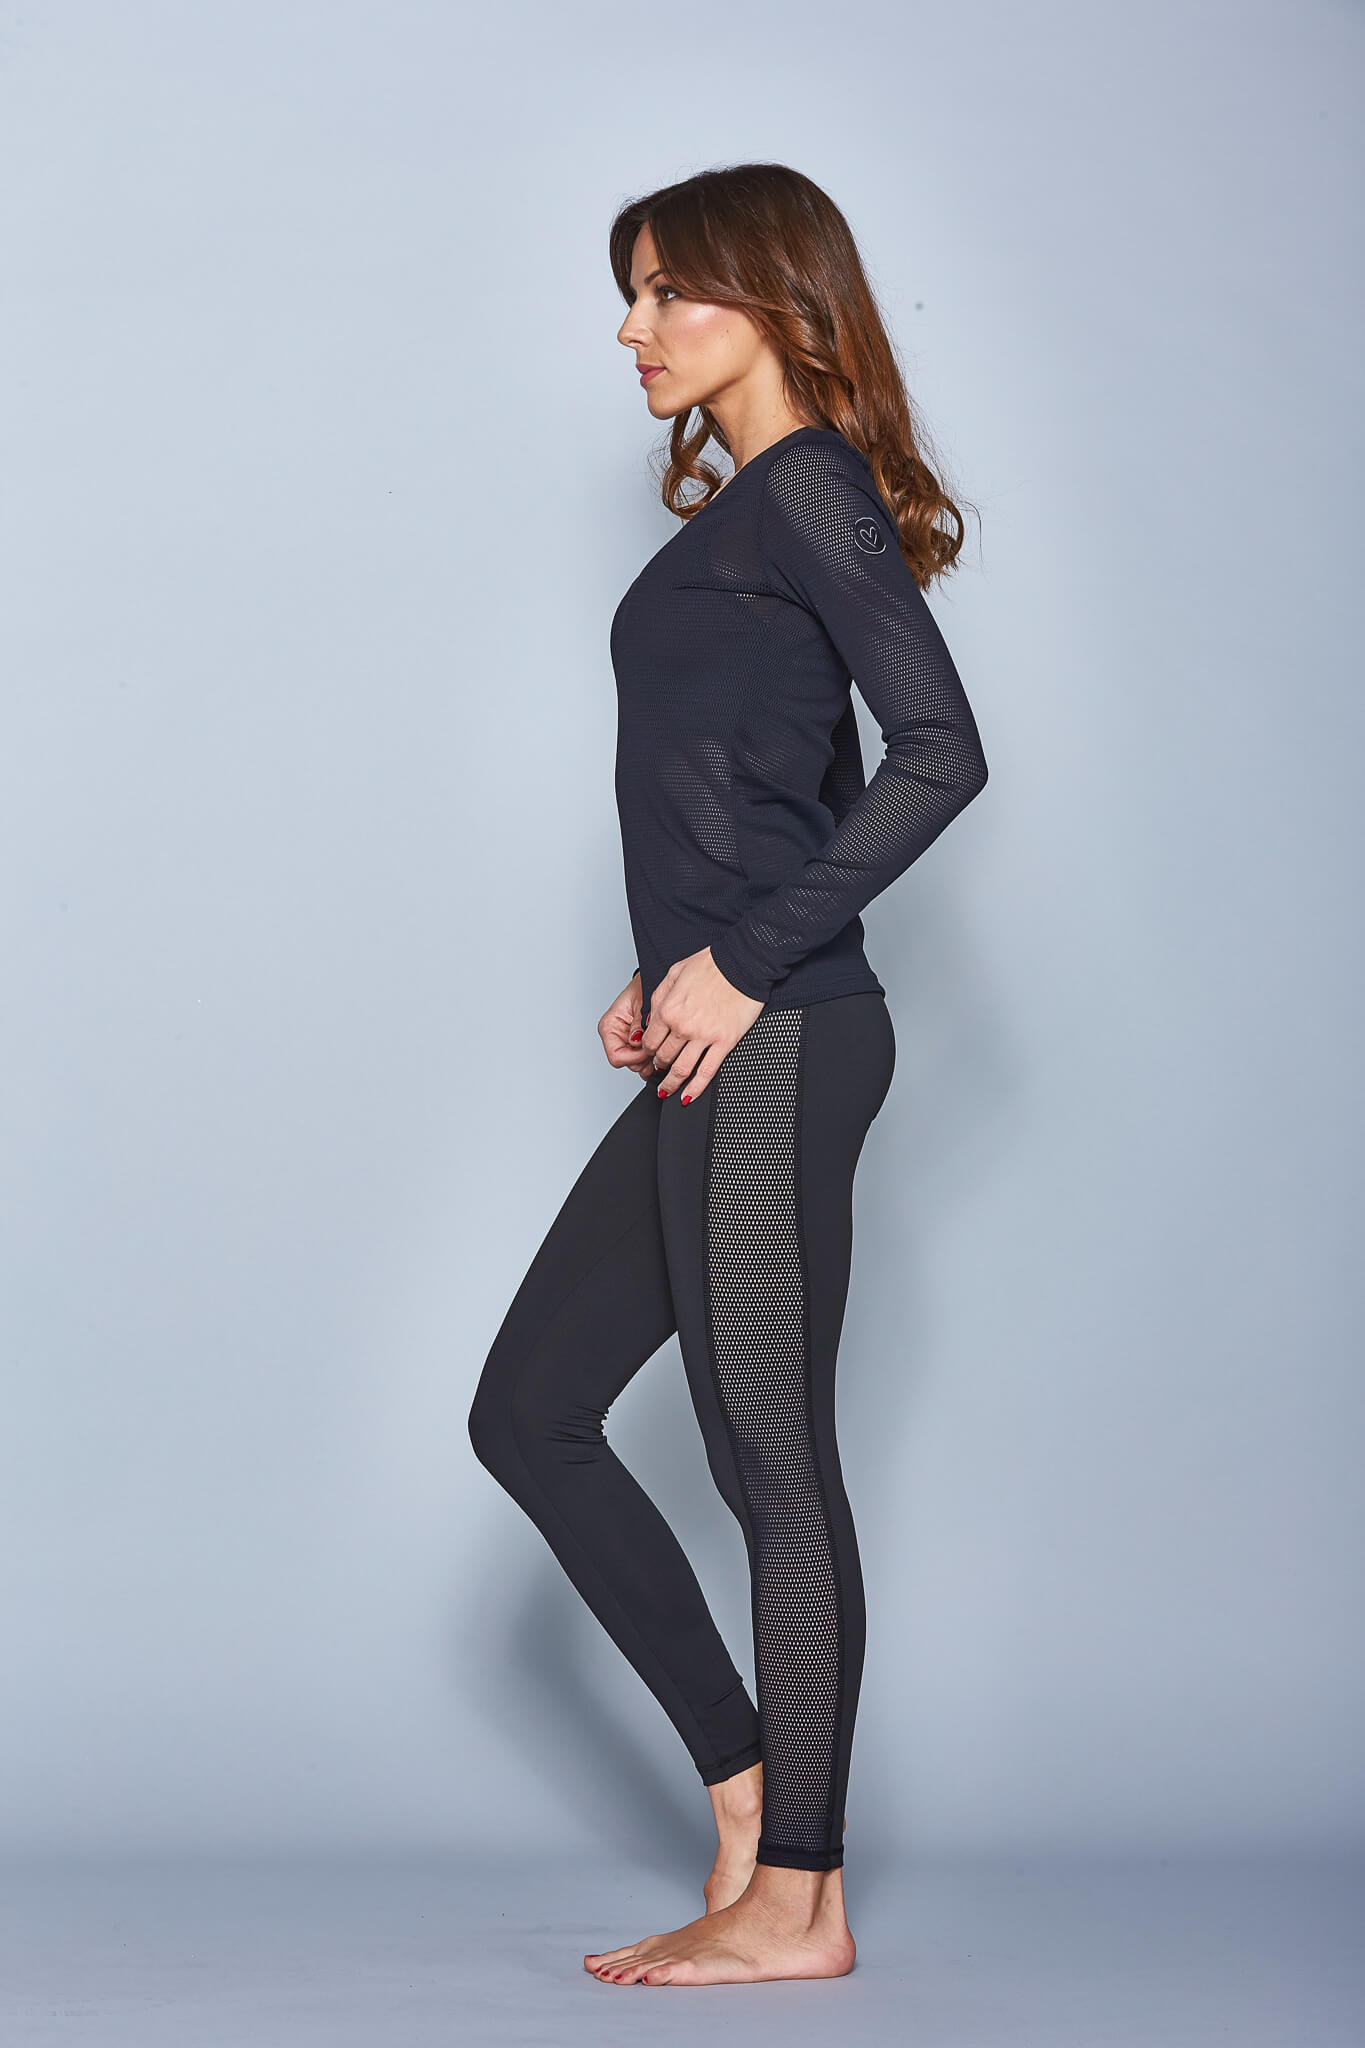 Vichy Long Sleeve Yoga Shirt - BarbellPrincessUsa